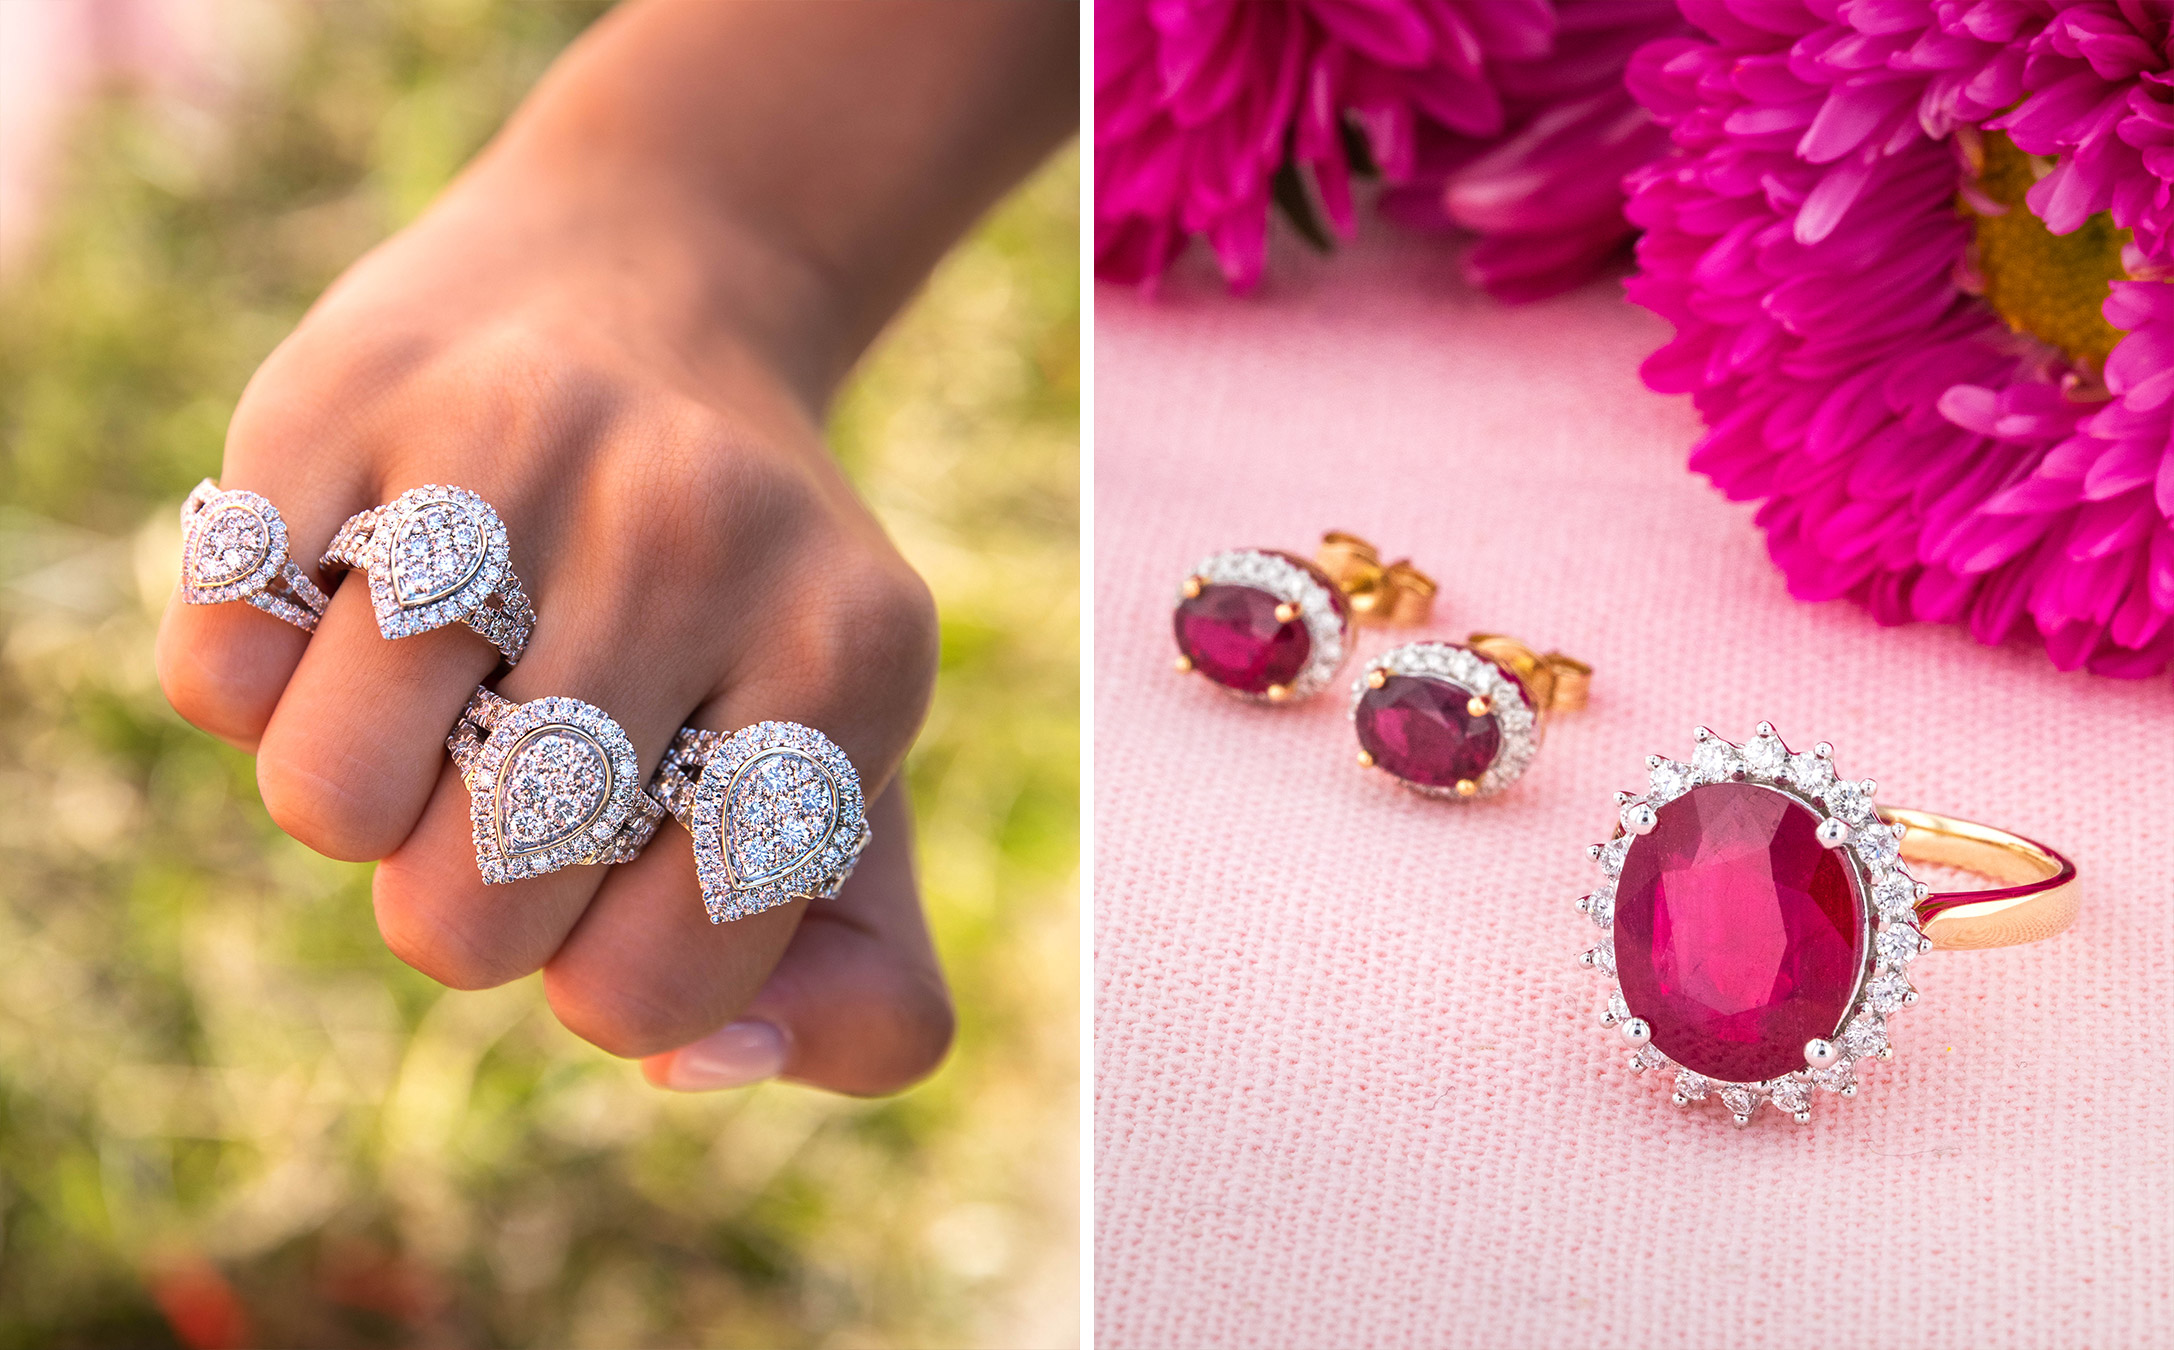 How To Wear Multiple Diamond Rings: stick to one theme